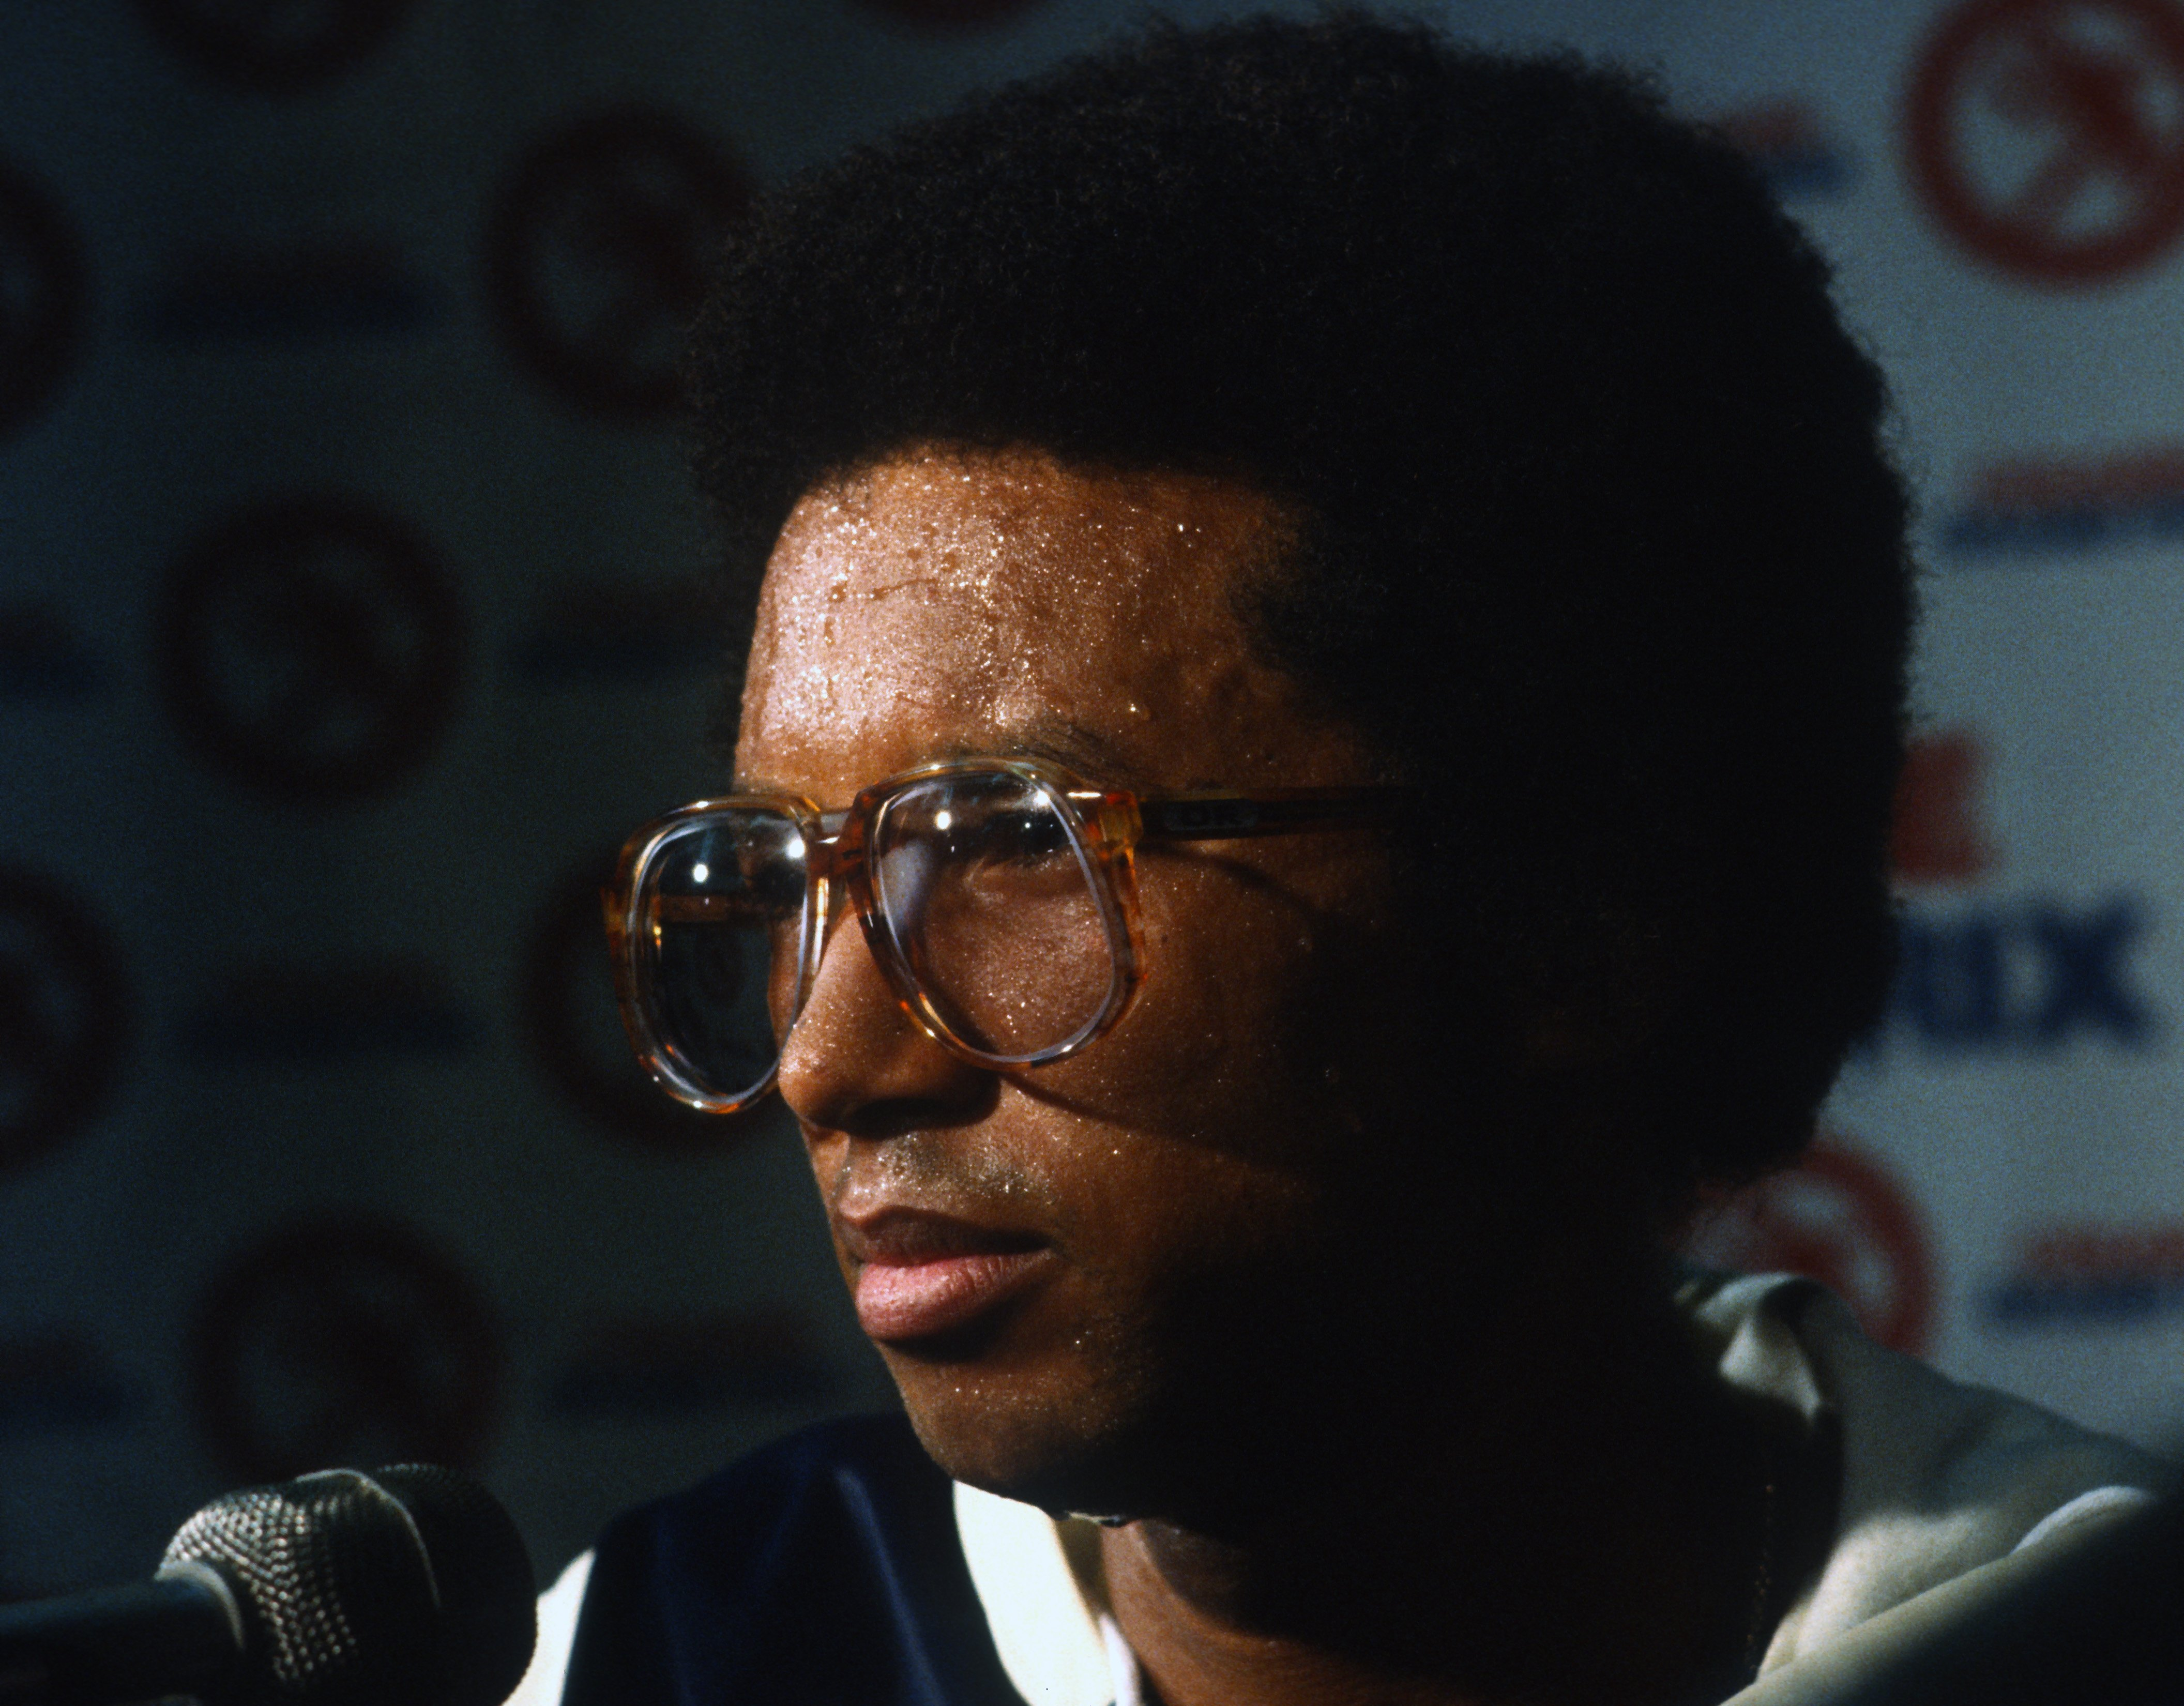 Tennis player Arthur Ashe at a press conference in 1979